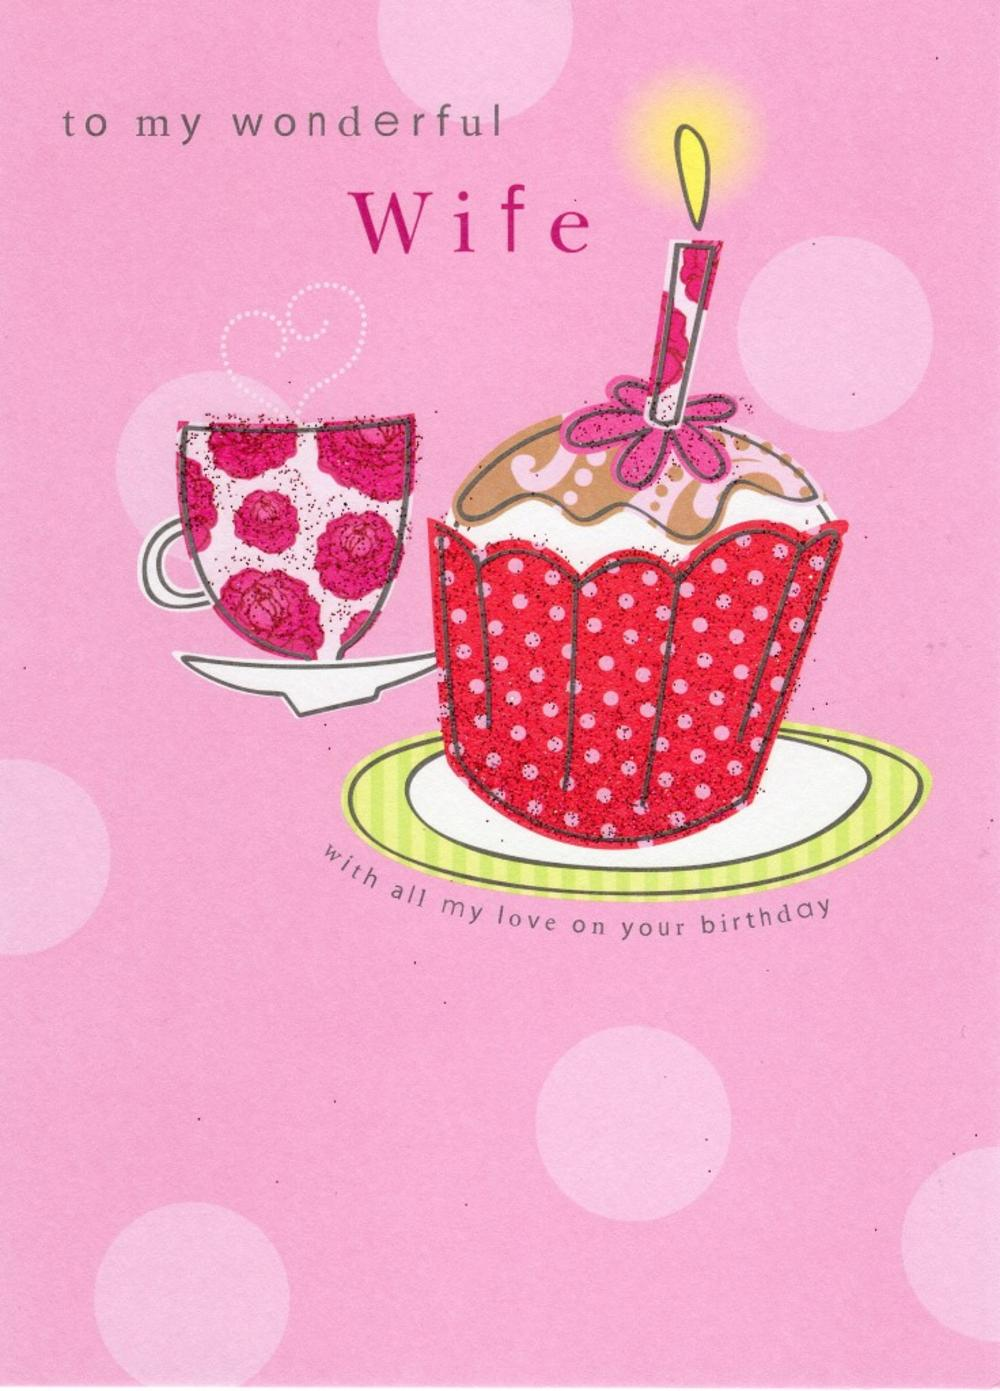 Wonderful Wife Birthday Greeting Card